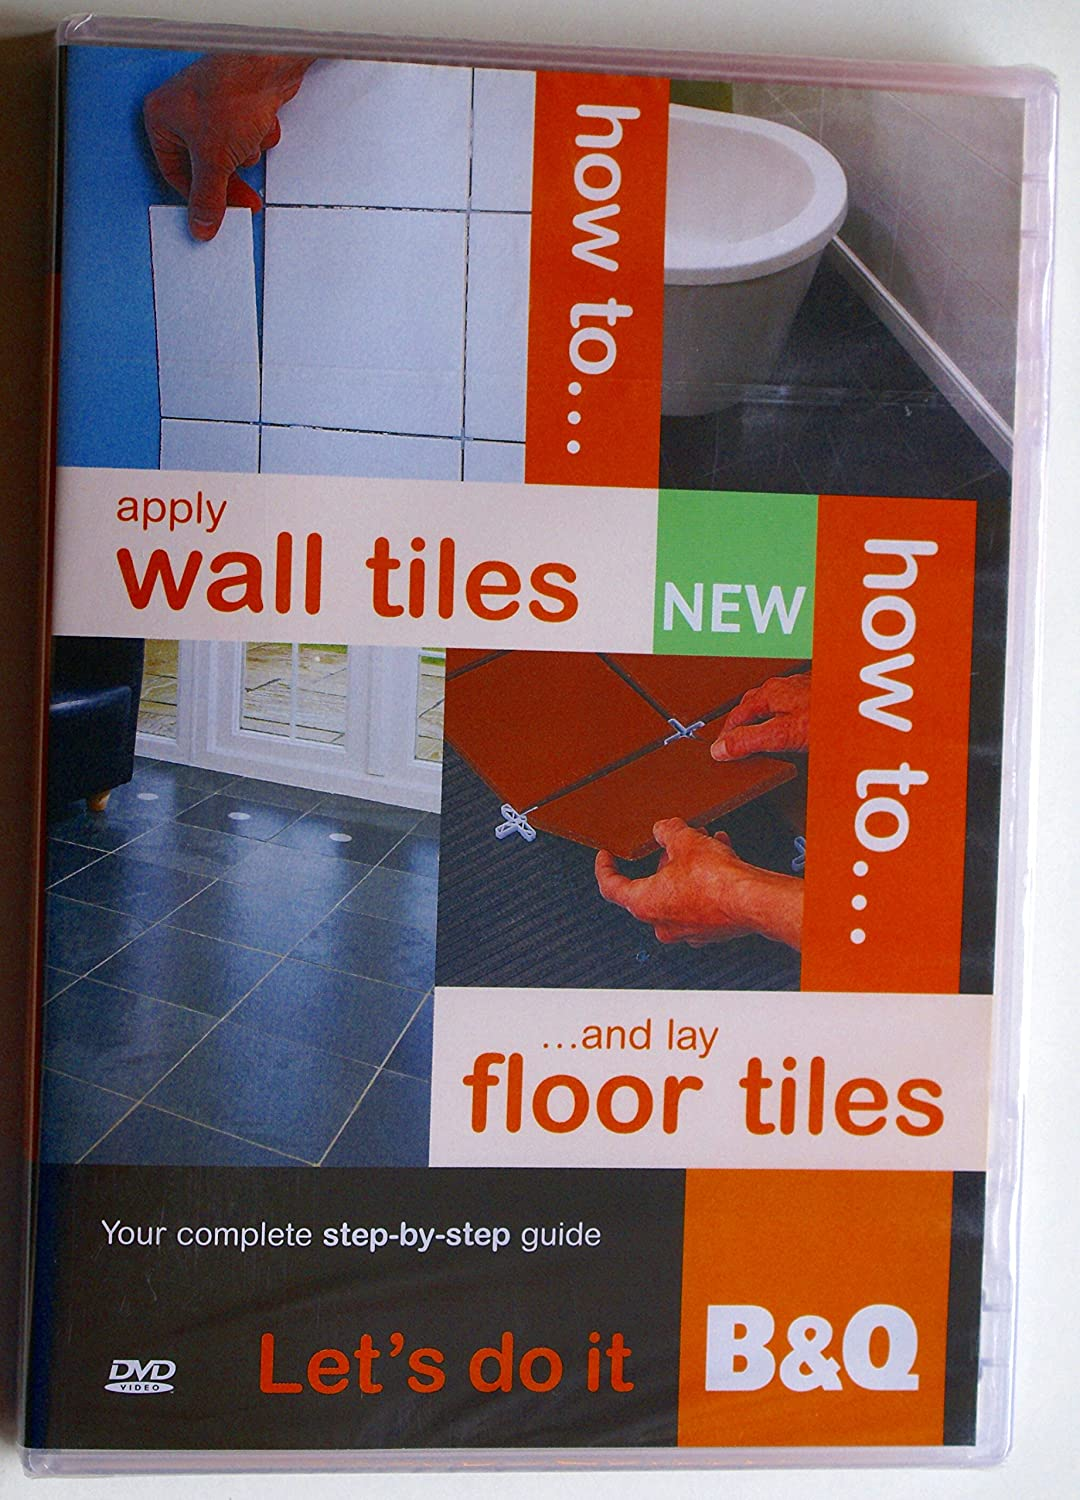 b q how to apply wall tiles and lay floor tiles instructional diy